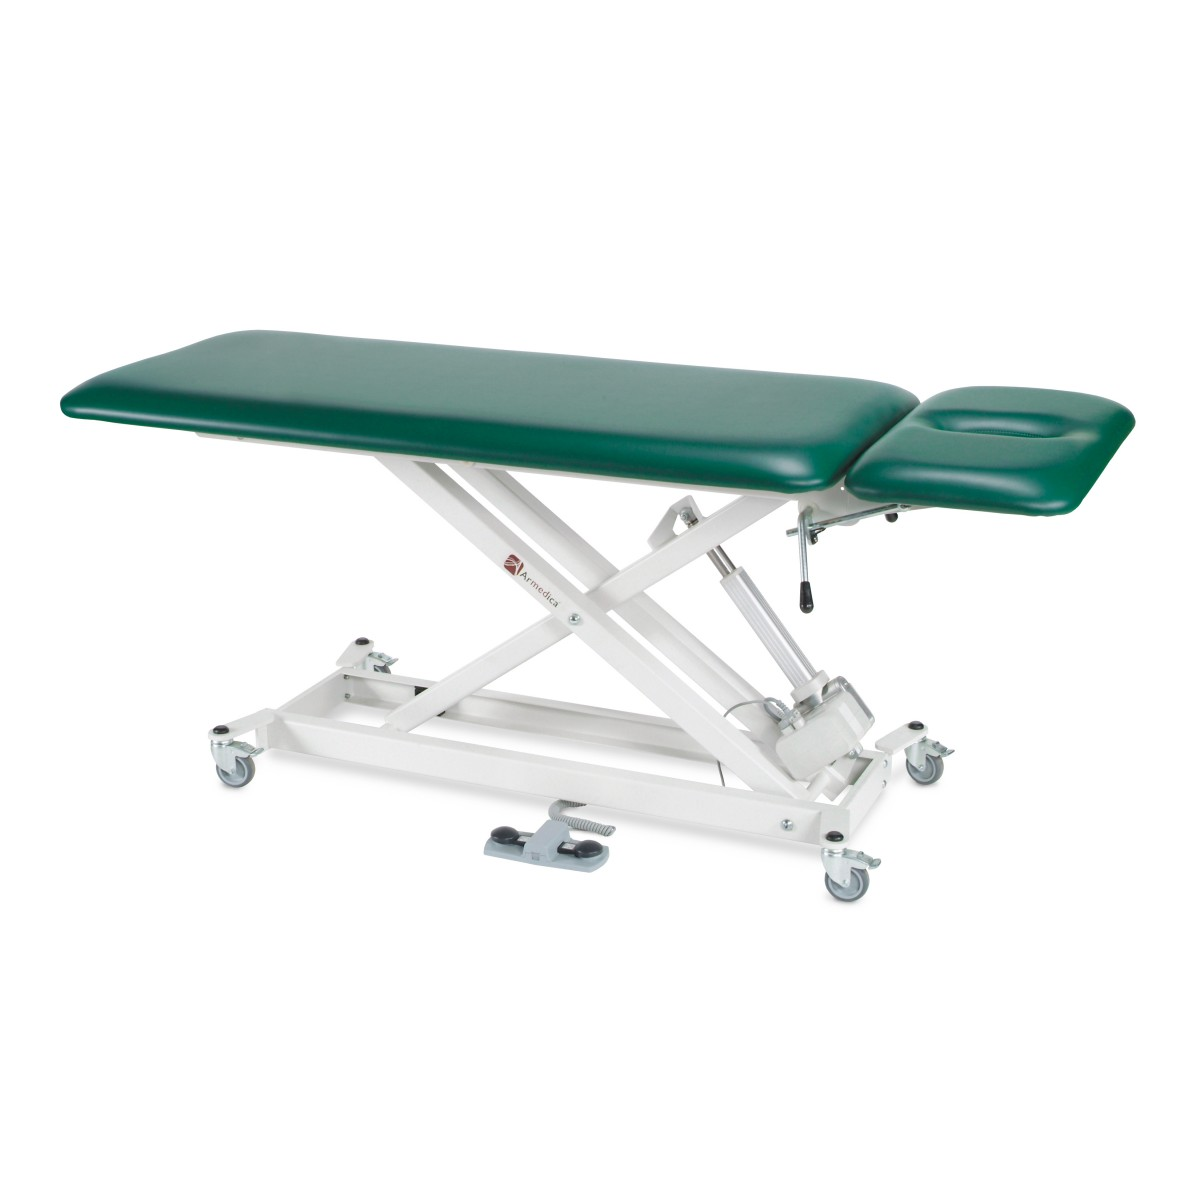 Armedica AM-SX 2000 treatment table